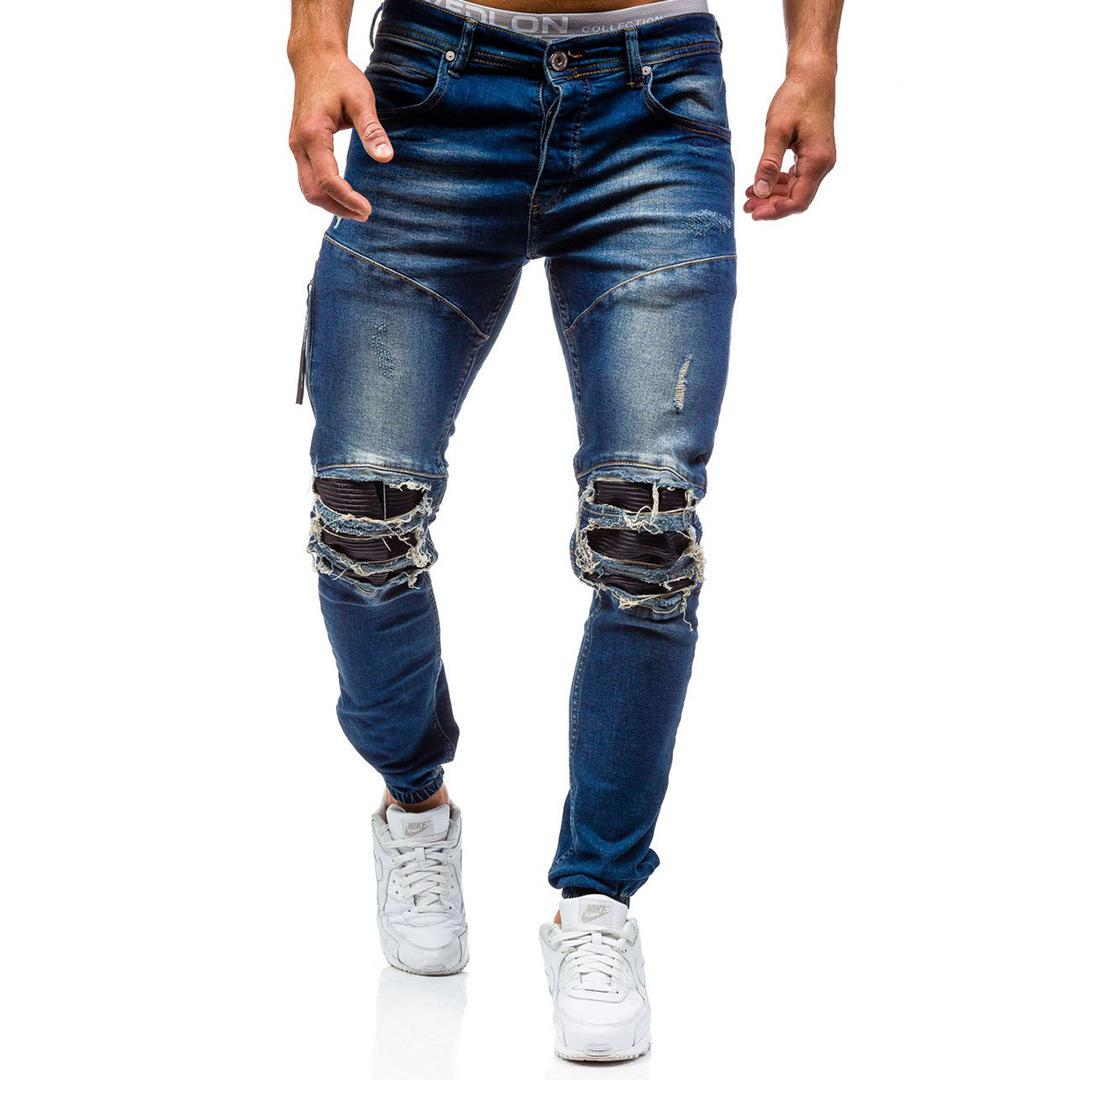 71f377d61e2e8 2019 Dark Blue Skinny Ripped Jeans For Men Big Hole Distressed Repaired  Tight Pant Slim Fit Stretch Dark Washed Jeans From Xunmi